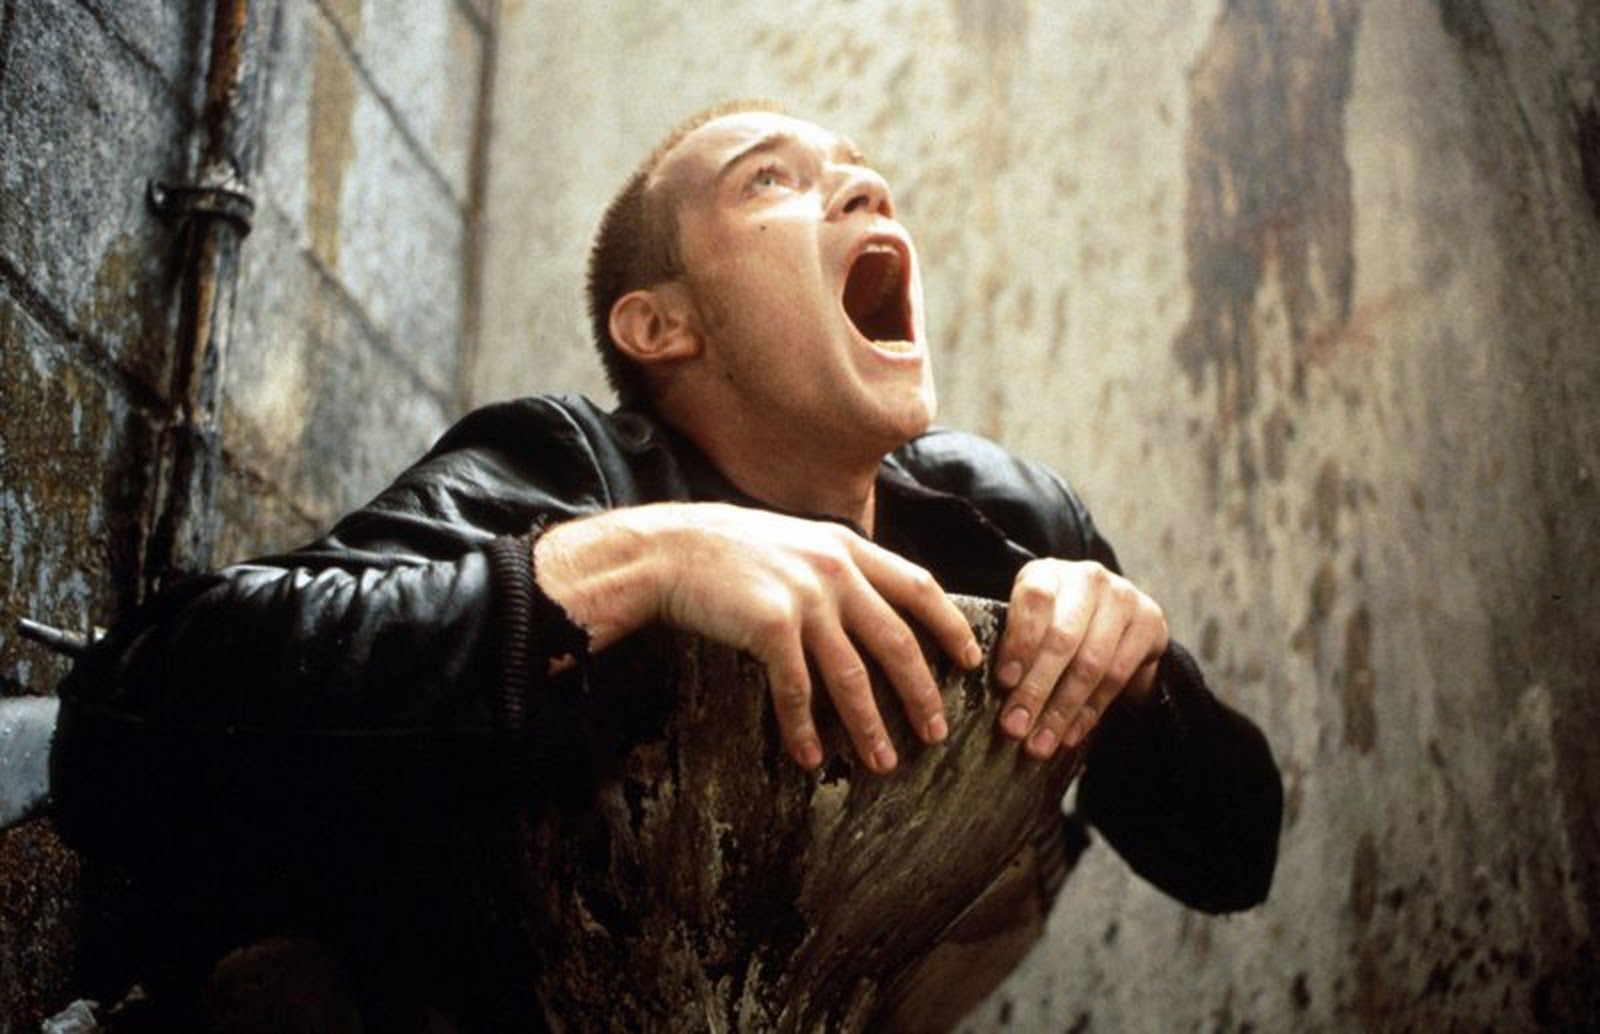 The faeces in the toilet scene from Trainspotting, were actu